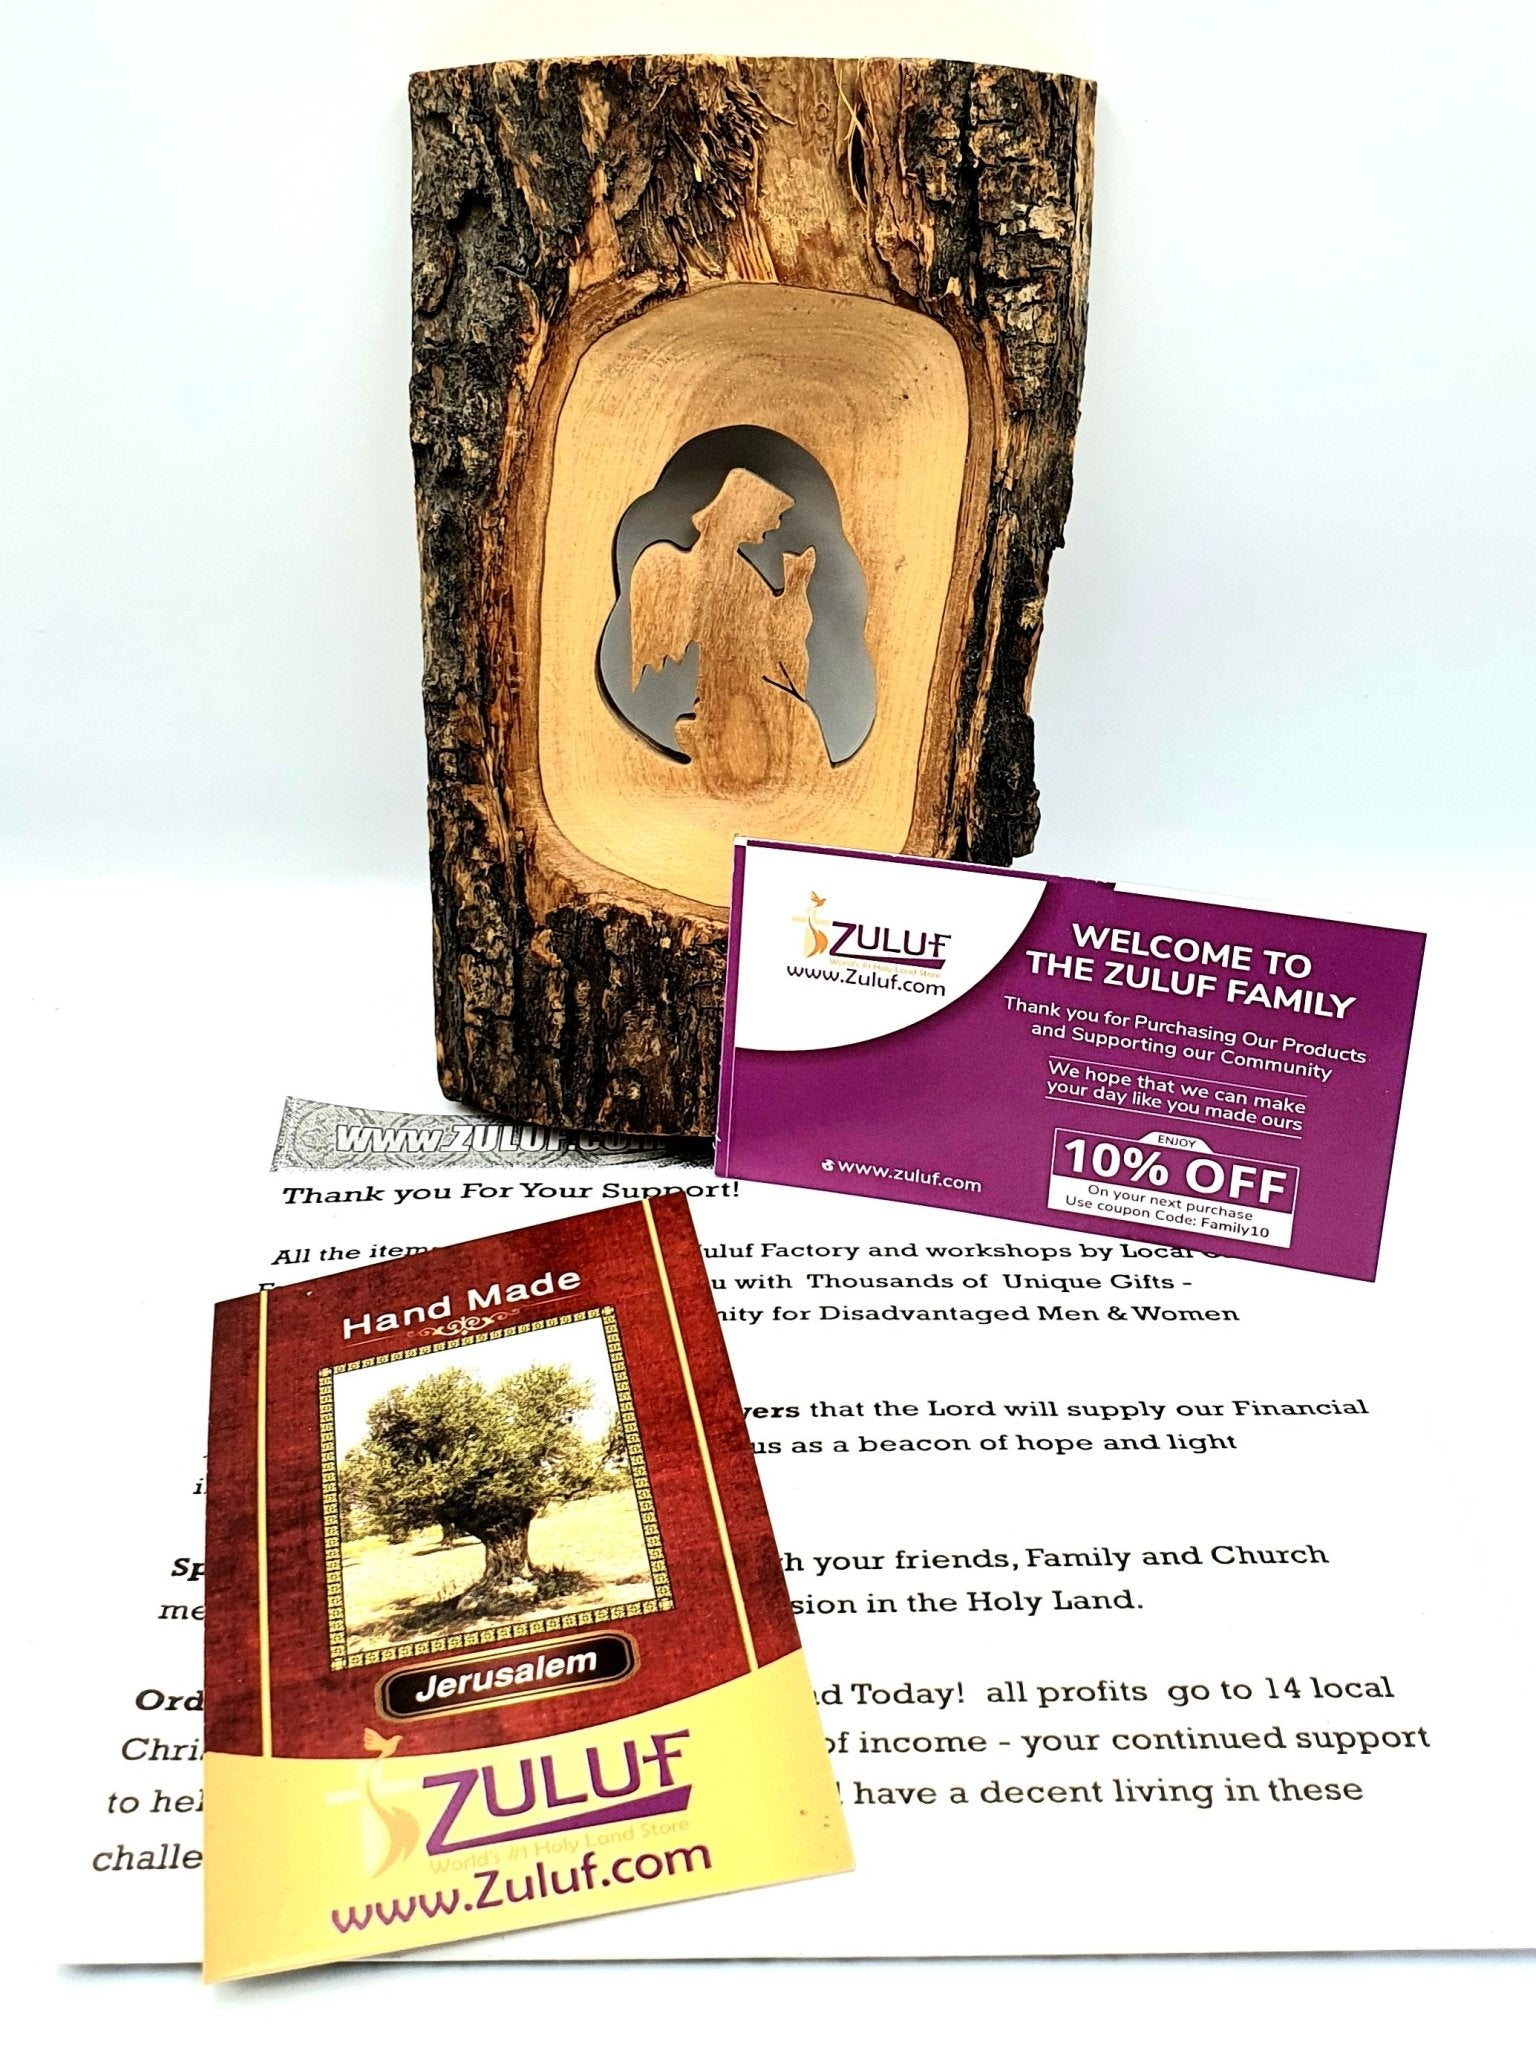 Olive Wood Natural Bark Décor Christmas Gift Praying Angel Olive Wood Product Zuluf- HLG234 - Zuluf